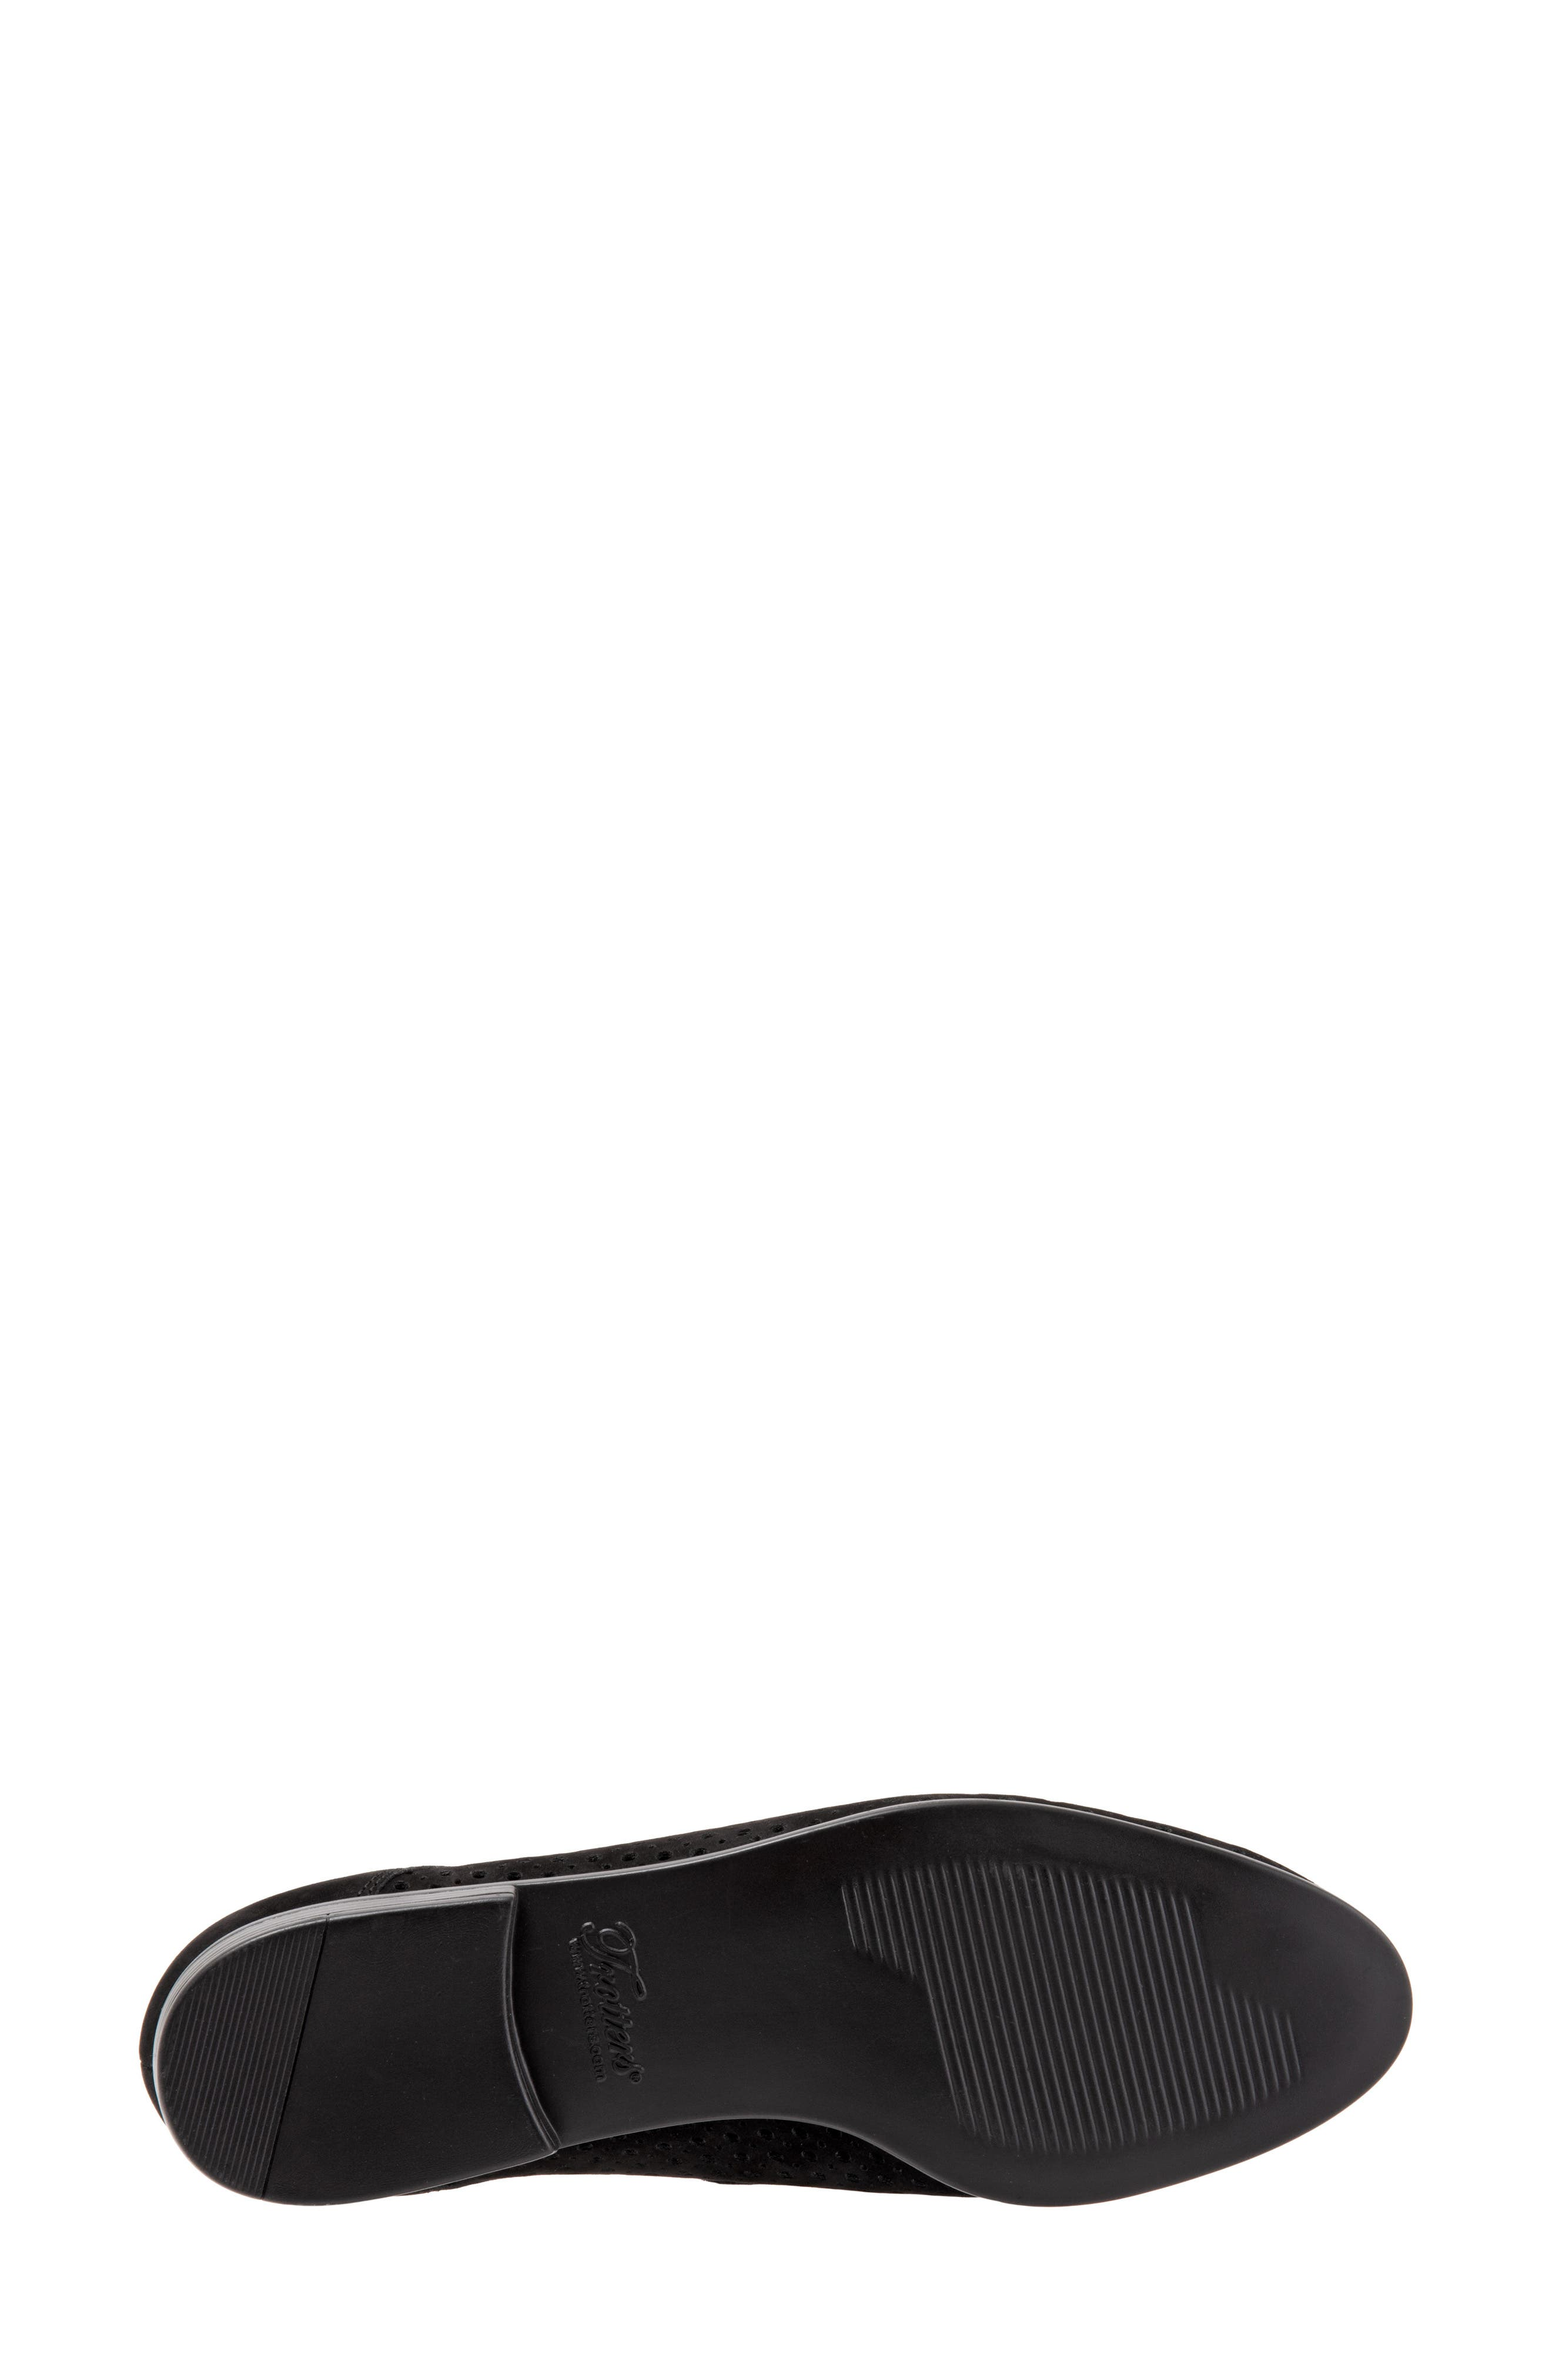 TROTTERS, Lizzie Derby Flat, Alternate thumbnail 6, color, BLACK/ BLACK LEATHER